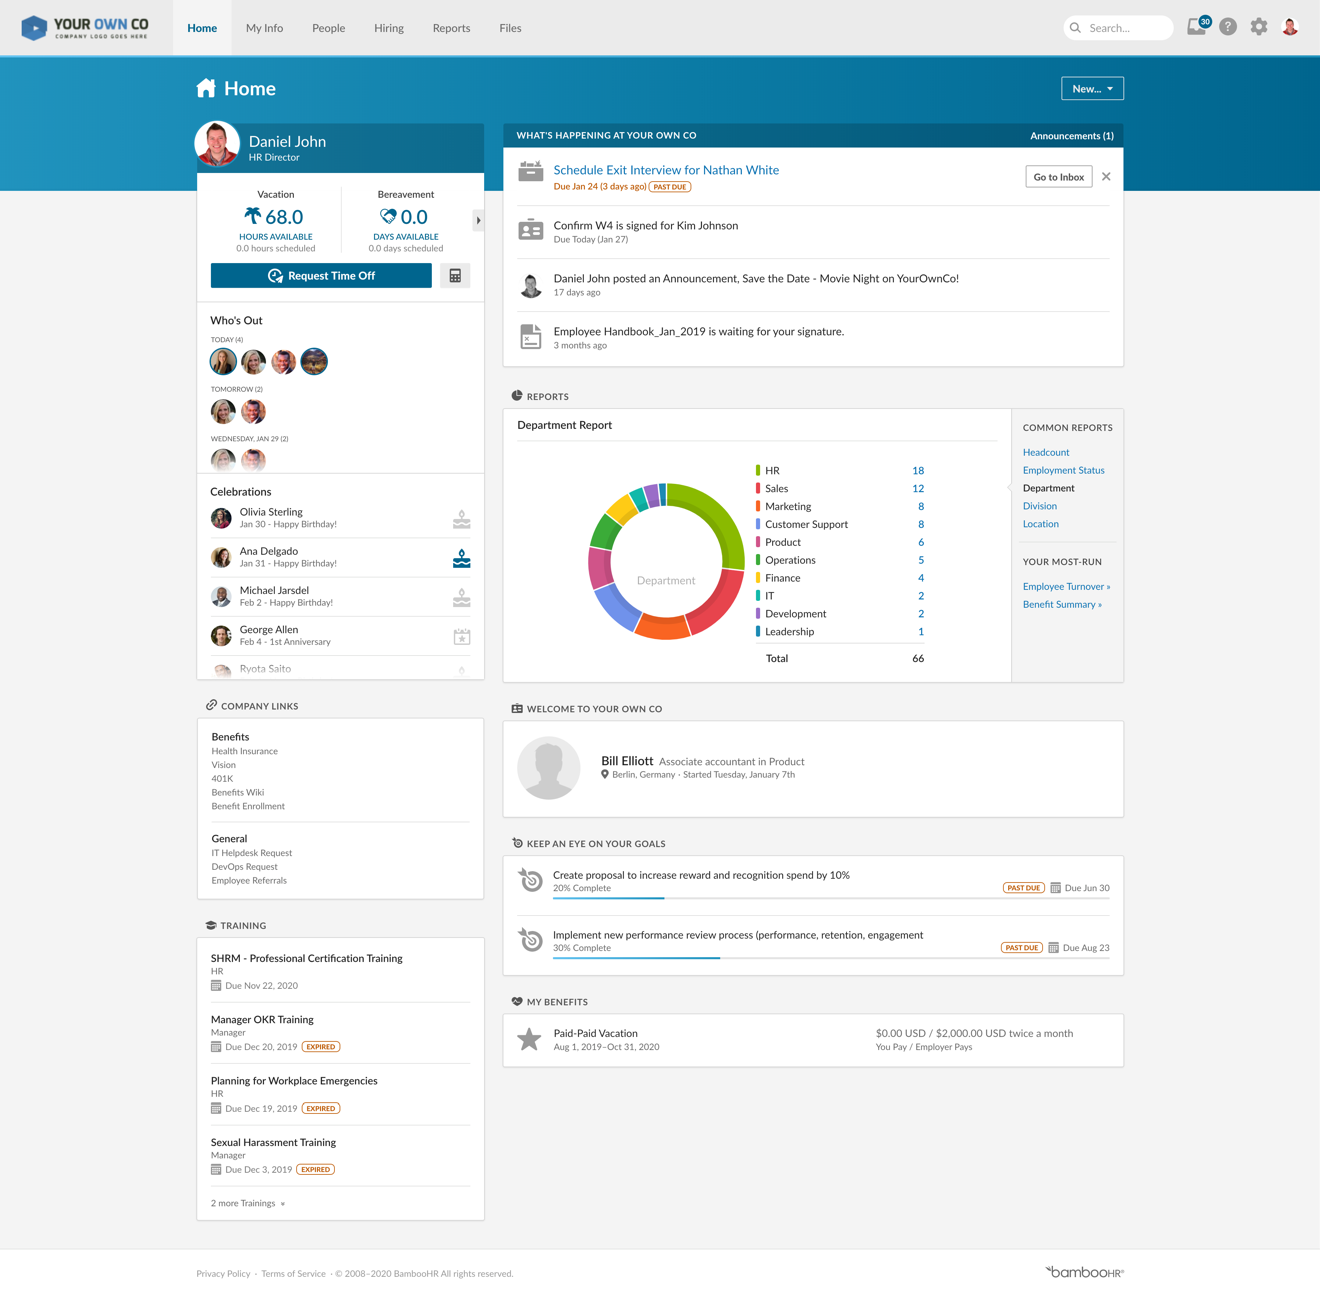 BambooHR Home - Employee View